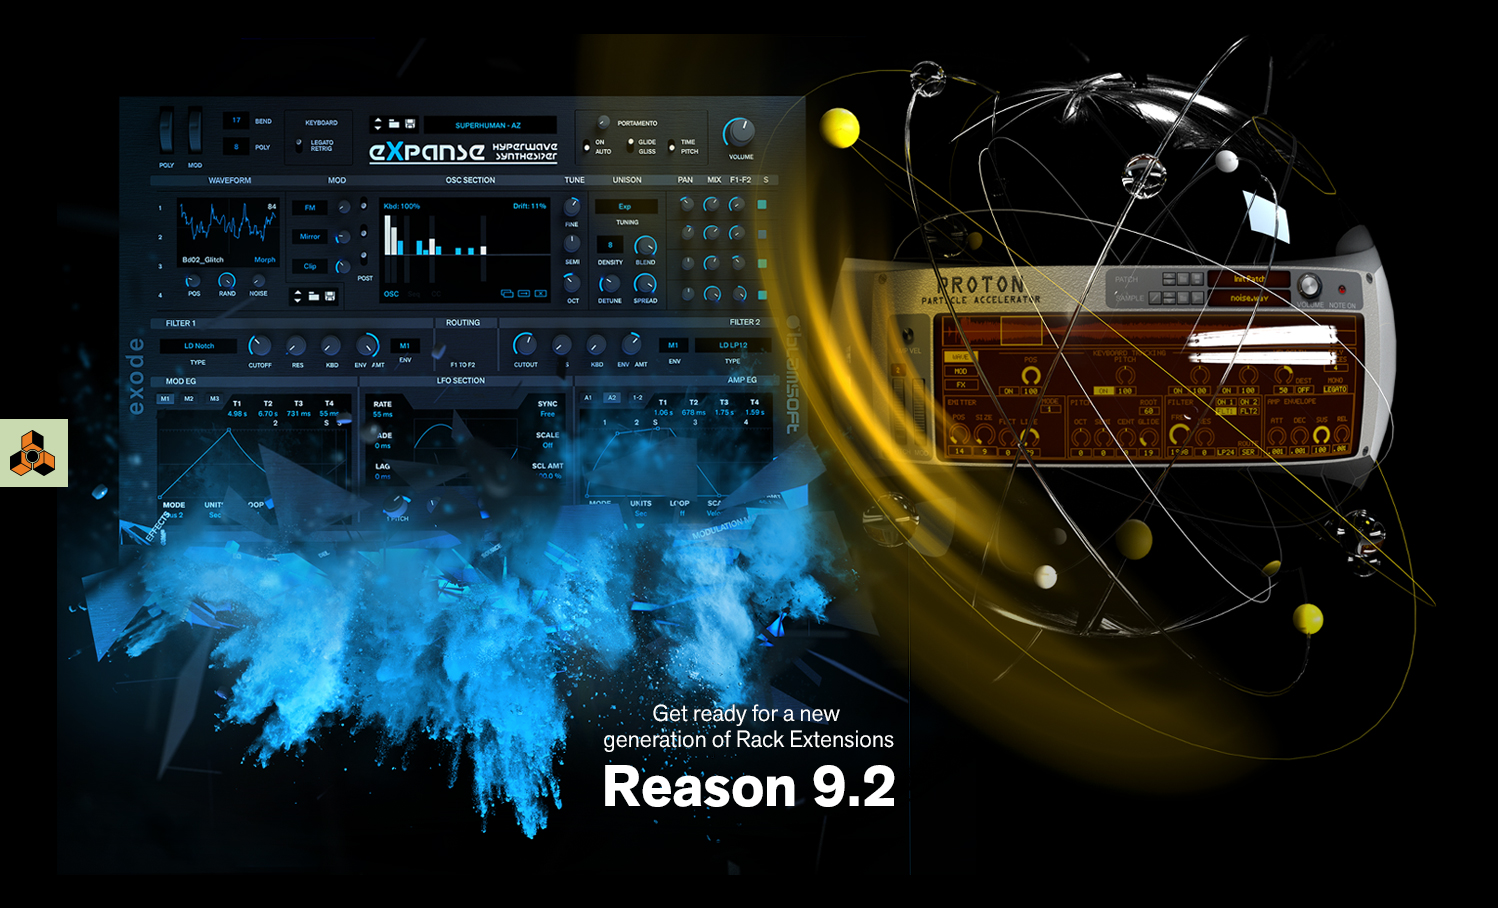 http://cdn.propellerheads.se/blog/reason92-blog-header.jpg